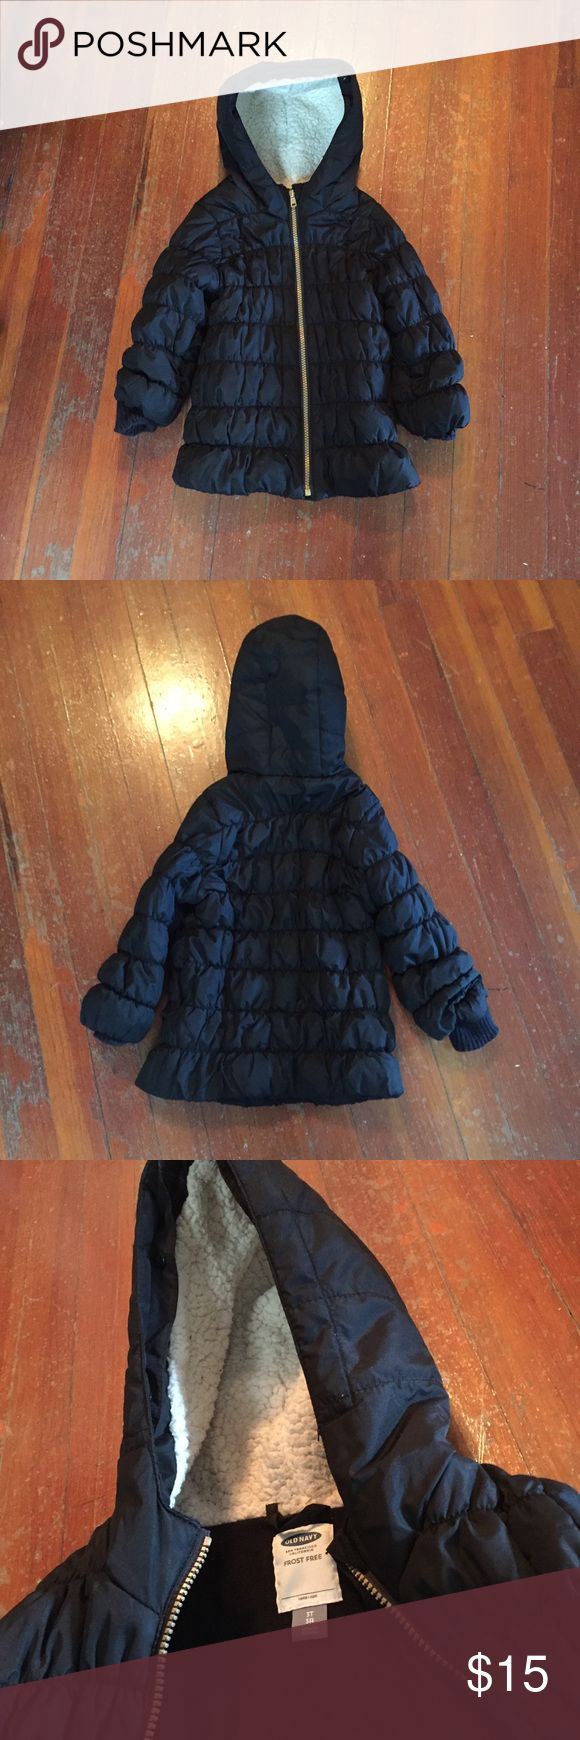 Toddler Winter Puffer Jacket This is a classic thin puffer jacket in black with white w/lined hood by old navy. It's is still in great shape and shows no signs of wear. Old Navy Jackets & Coats Puffers